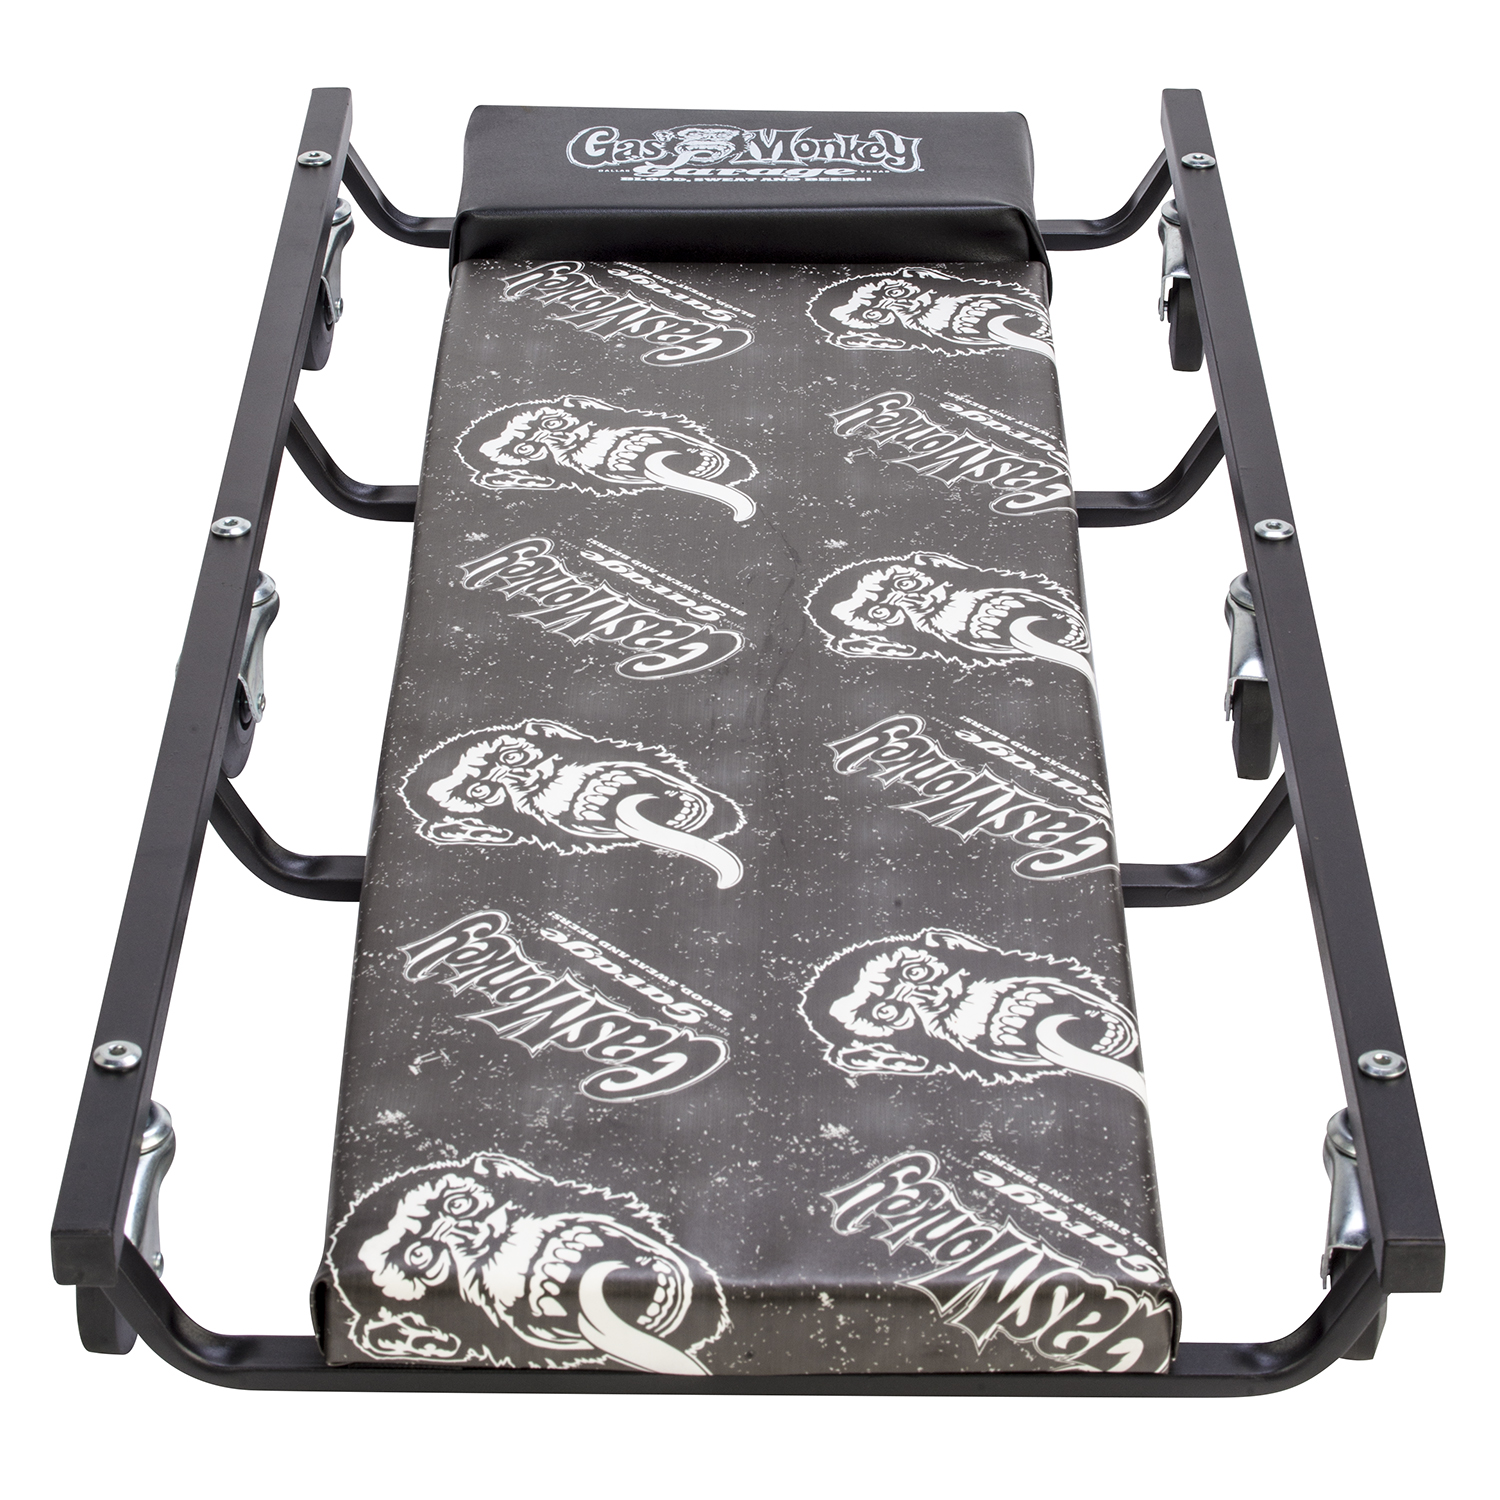 Gas Monkey Garage Mechanic Creeper with Headrest - Vinyl Cushion and 6 Rolling Casters - 350 Lbs Capacity